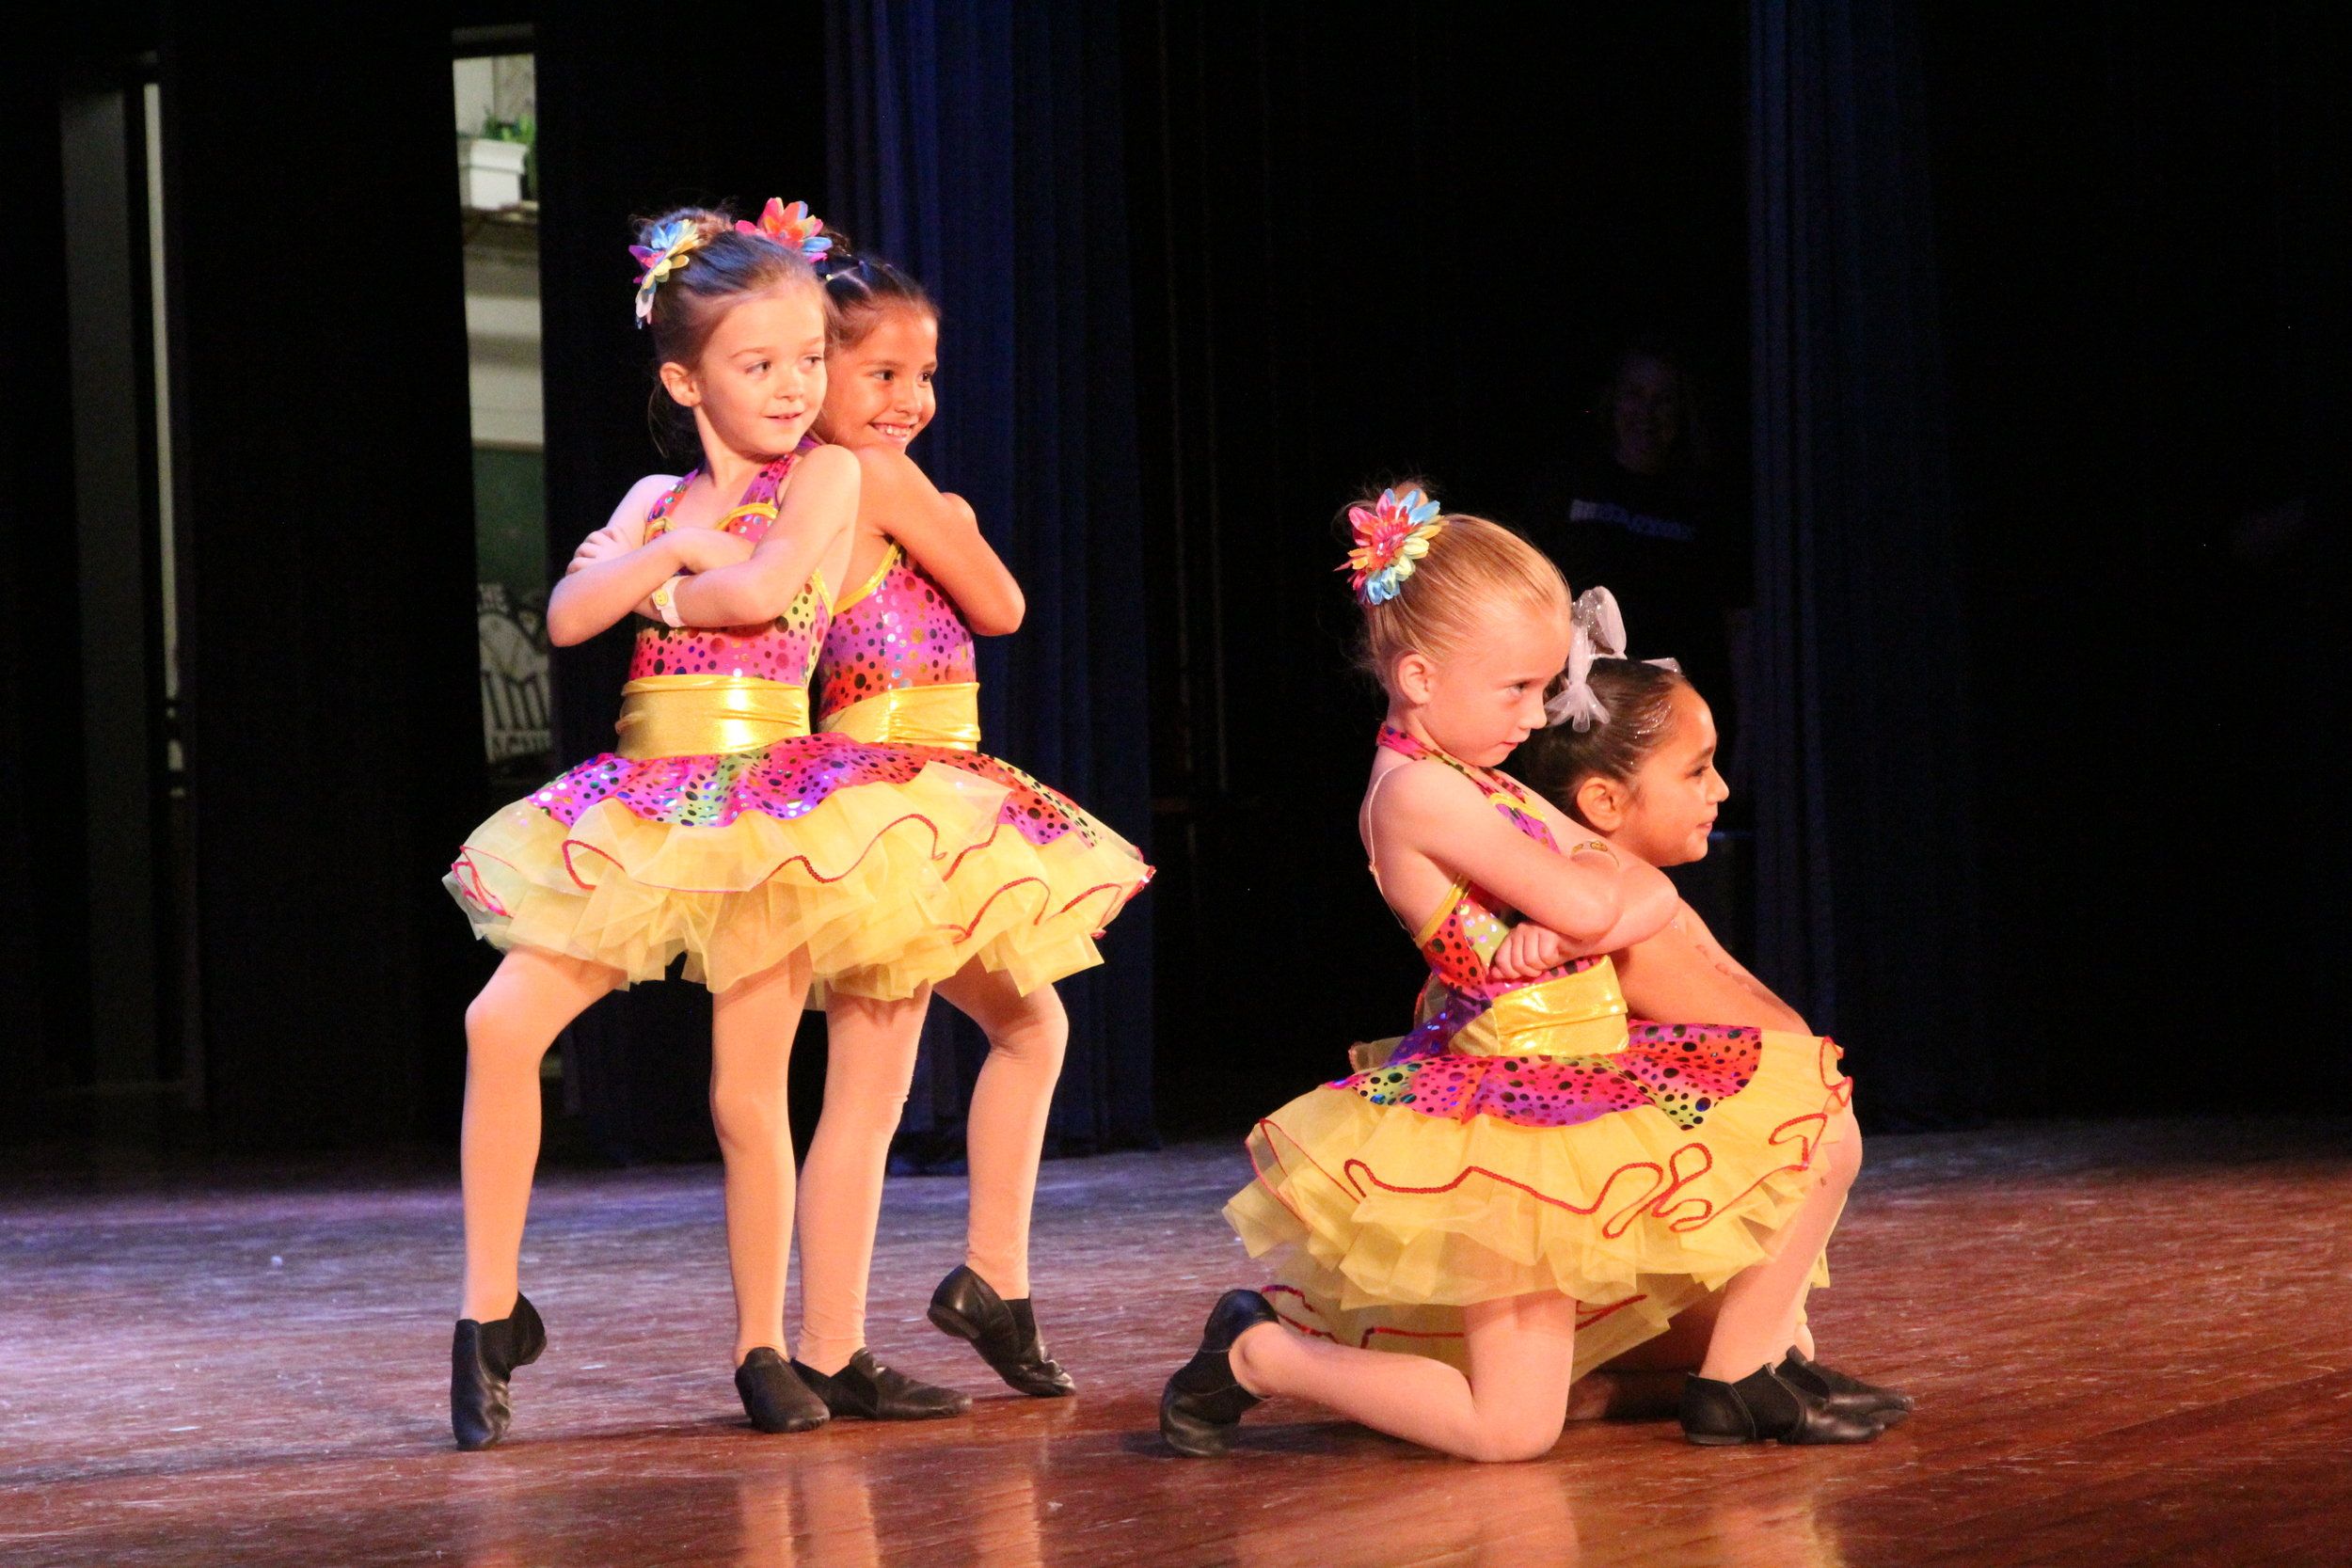 WHO WE ARE - Plaza Academy is Plaza Theatre Company's fine arts education program. Our Academy offers a variety of fine art disciplines for youth ages 2 to 18. Classes include study in acting, musical theatre, voice, tap, ballet and more!